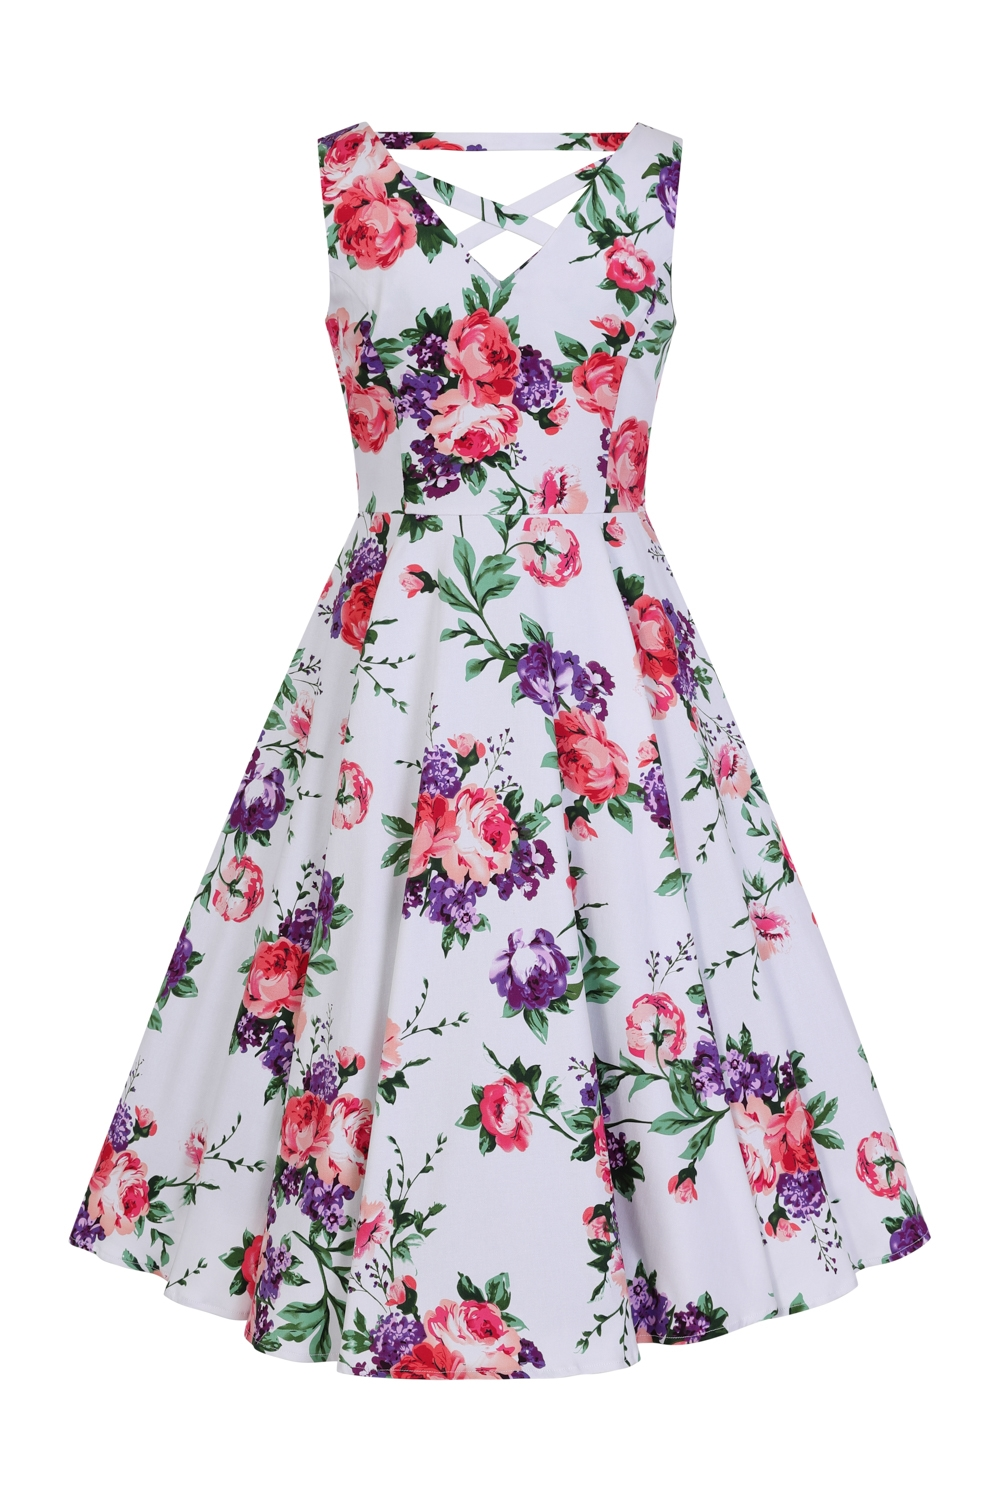 5e98f9cc2096 Hearts   Roses 50s White Pink Purple Floral Swing Dress